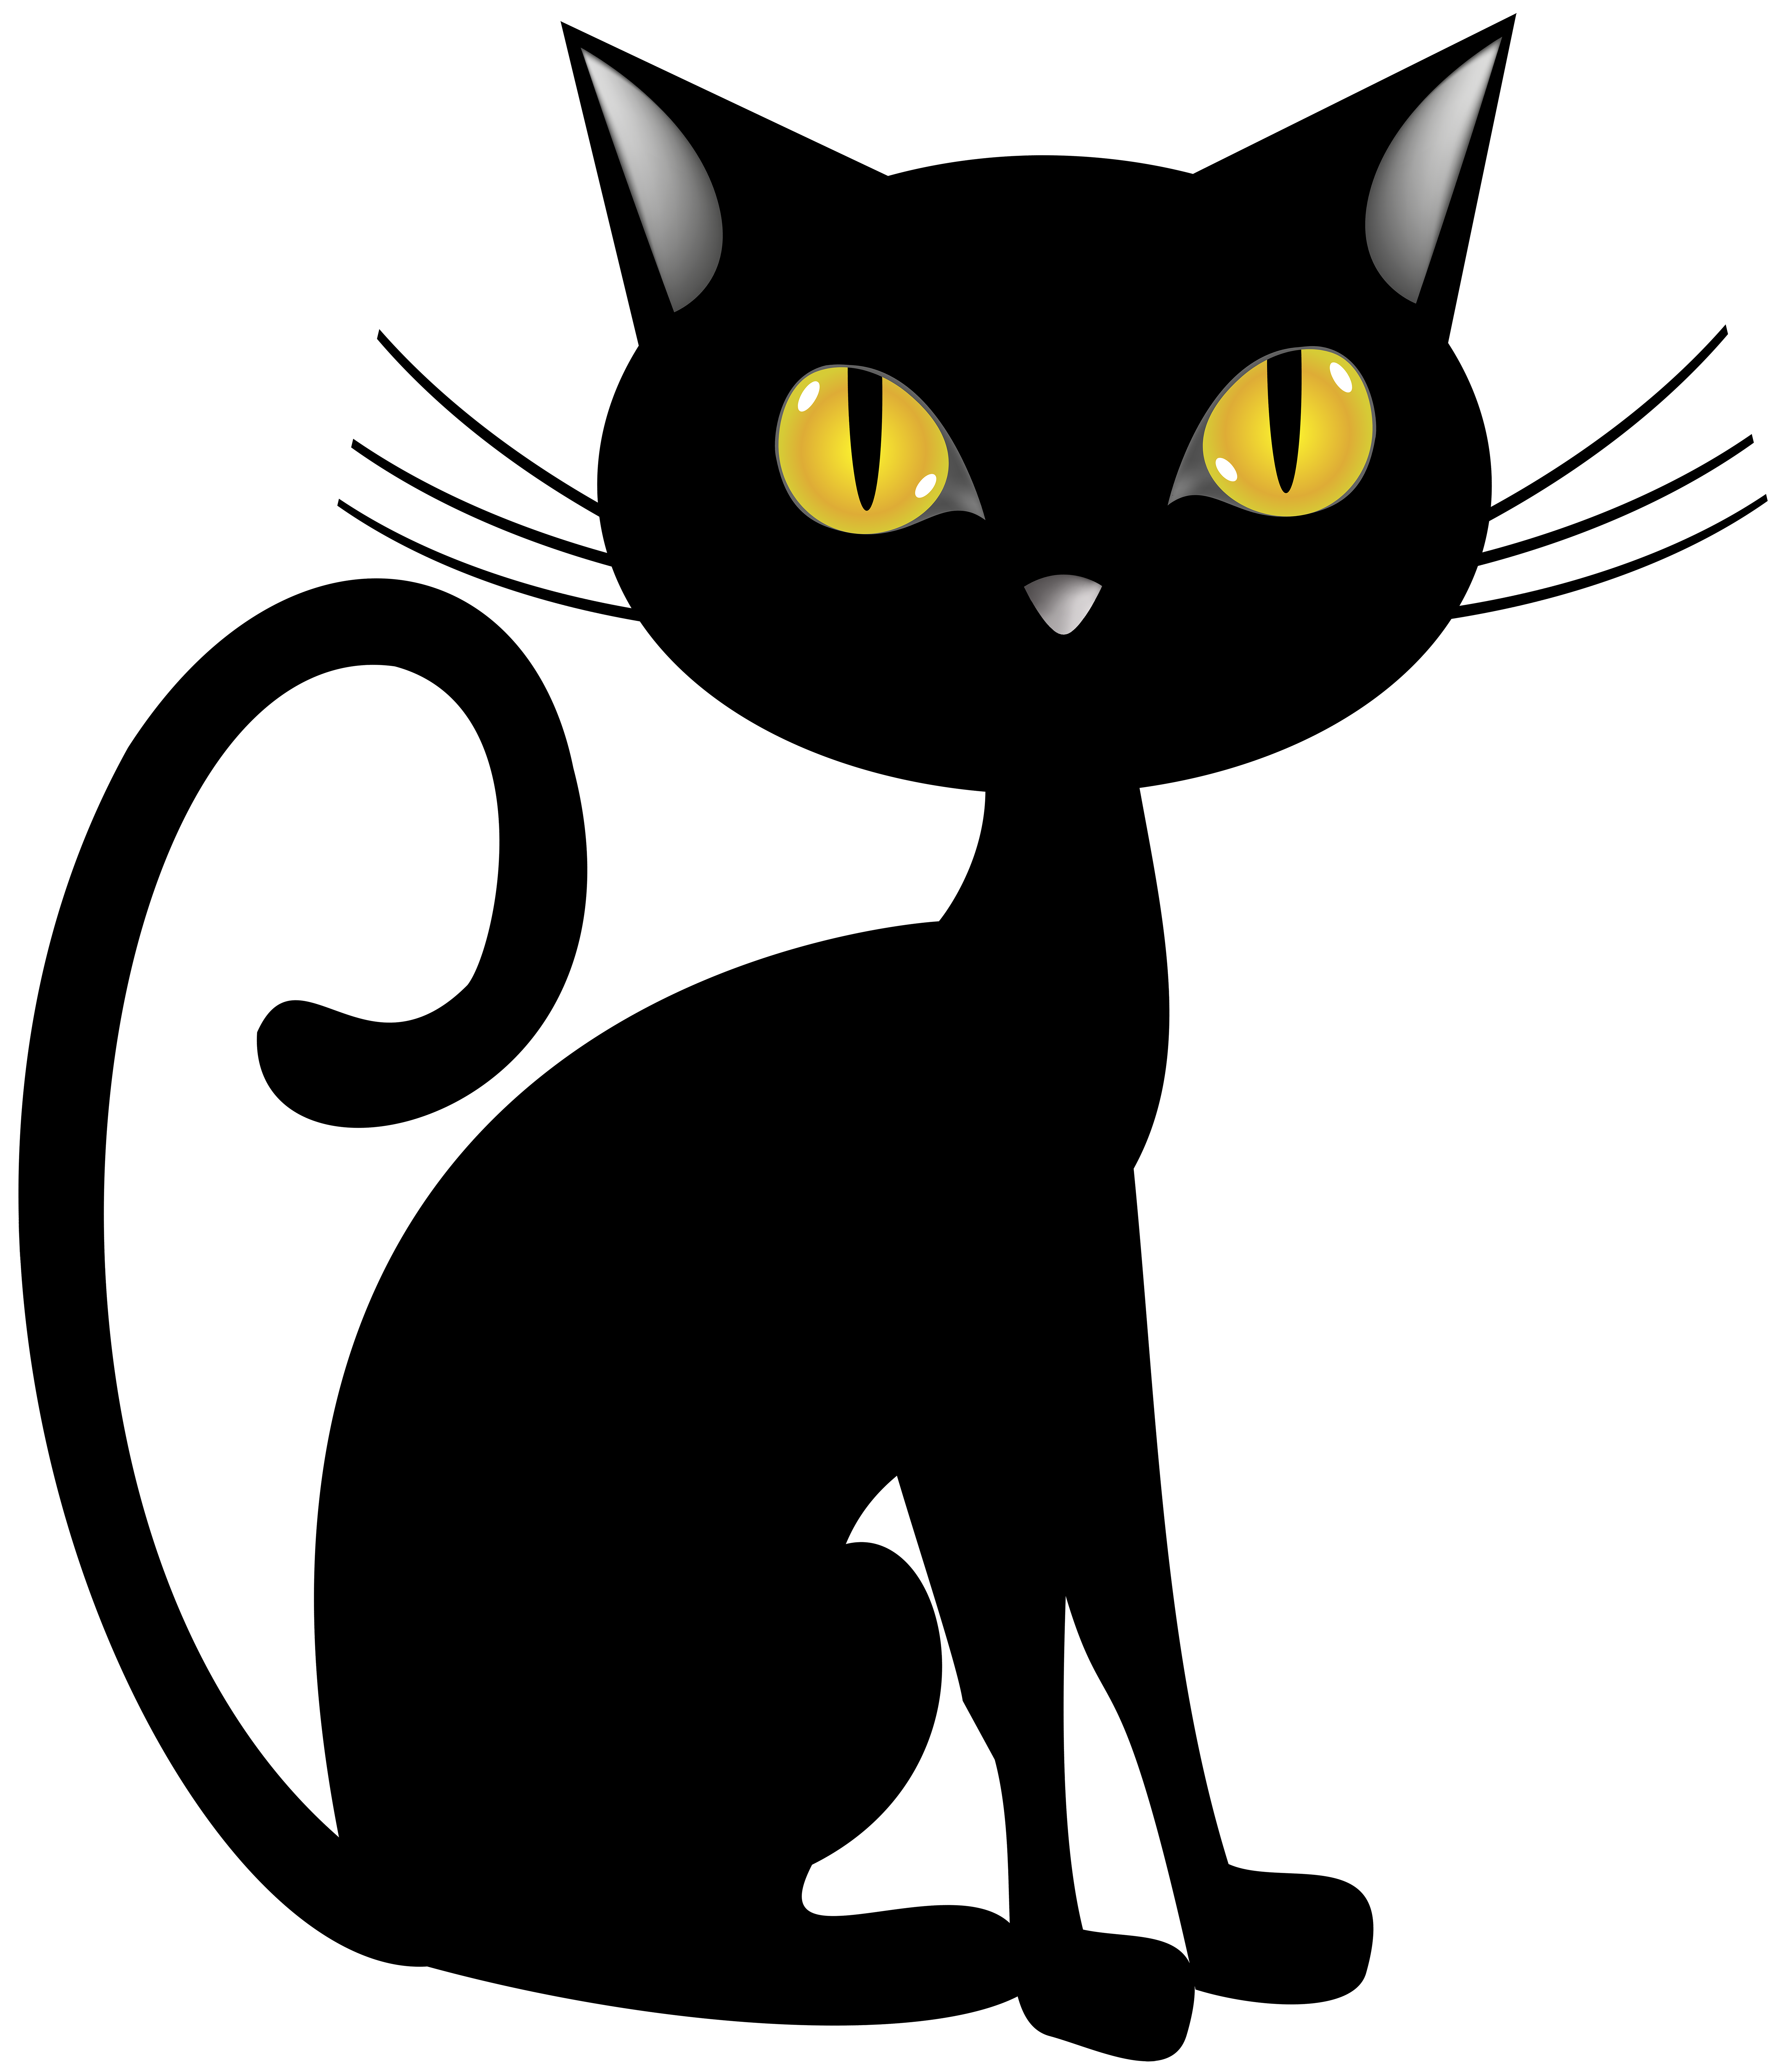 Clipart Halloween Black Cat Clipart Halloween Black Cat Transparent Free For Download On Webstockreview 2020